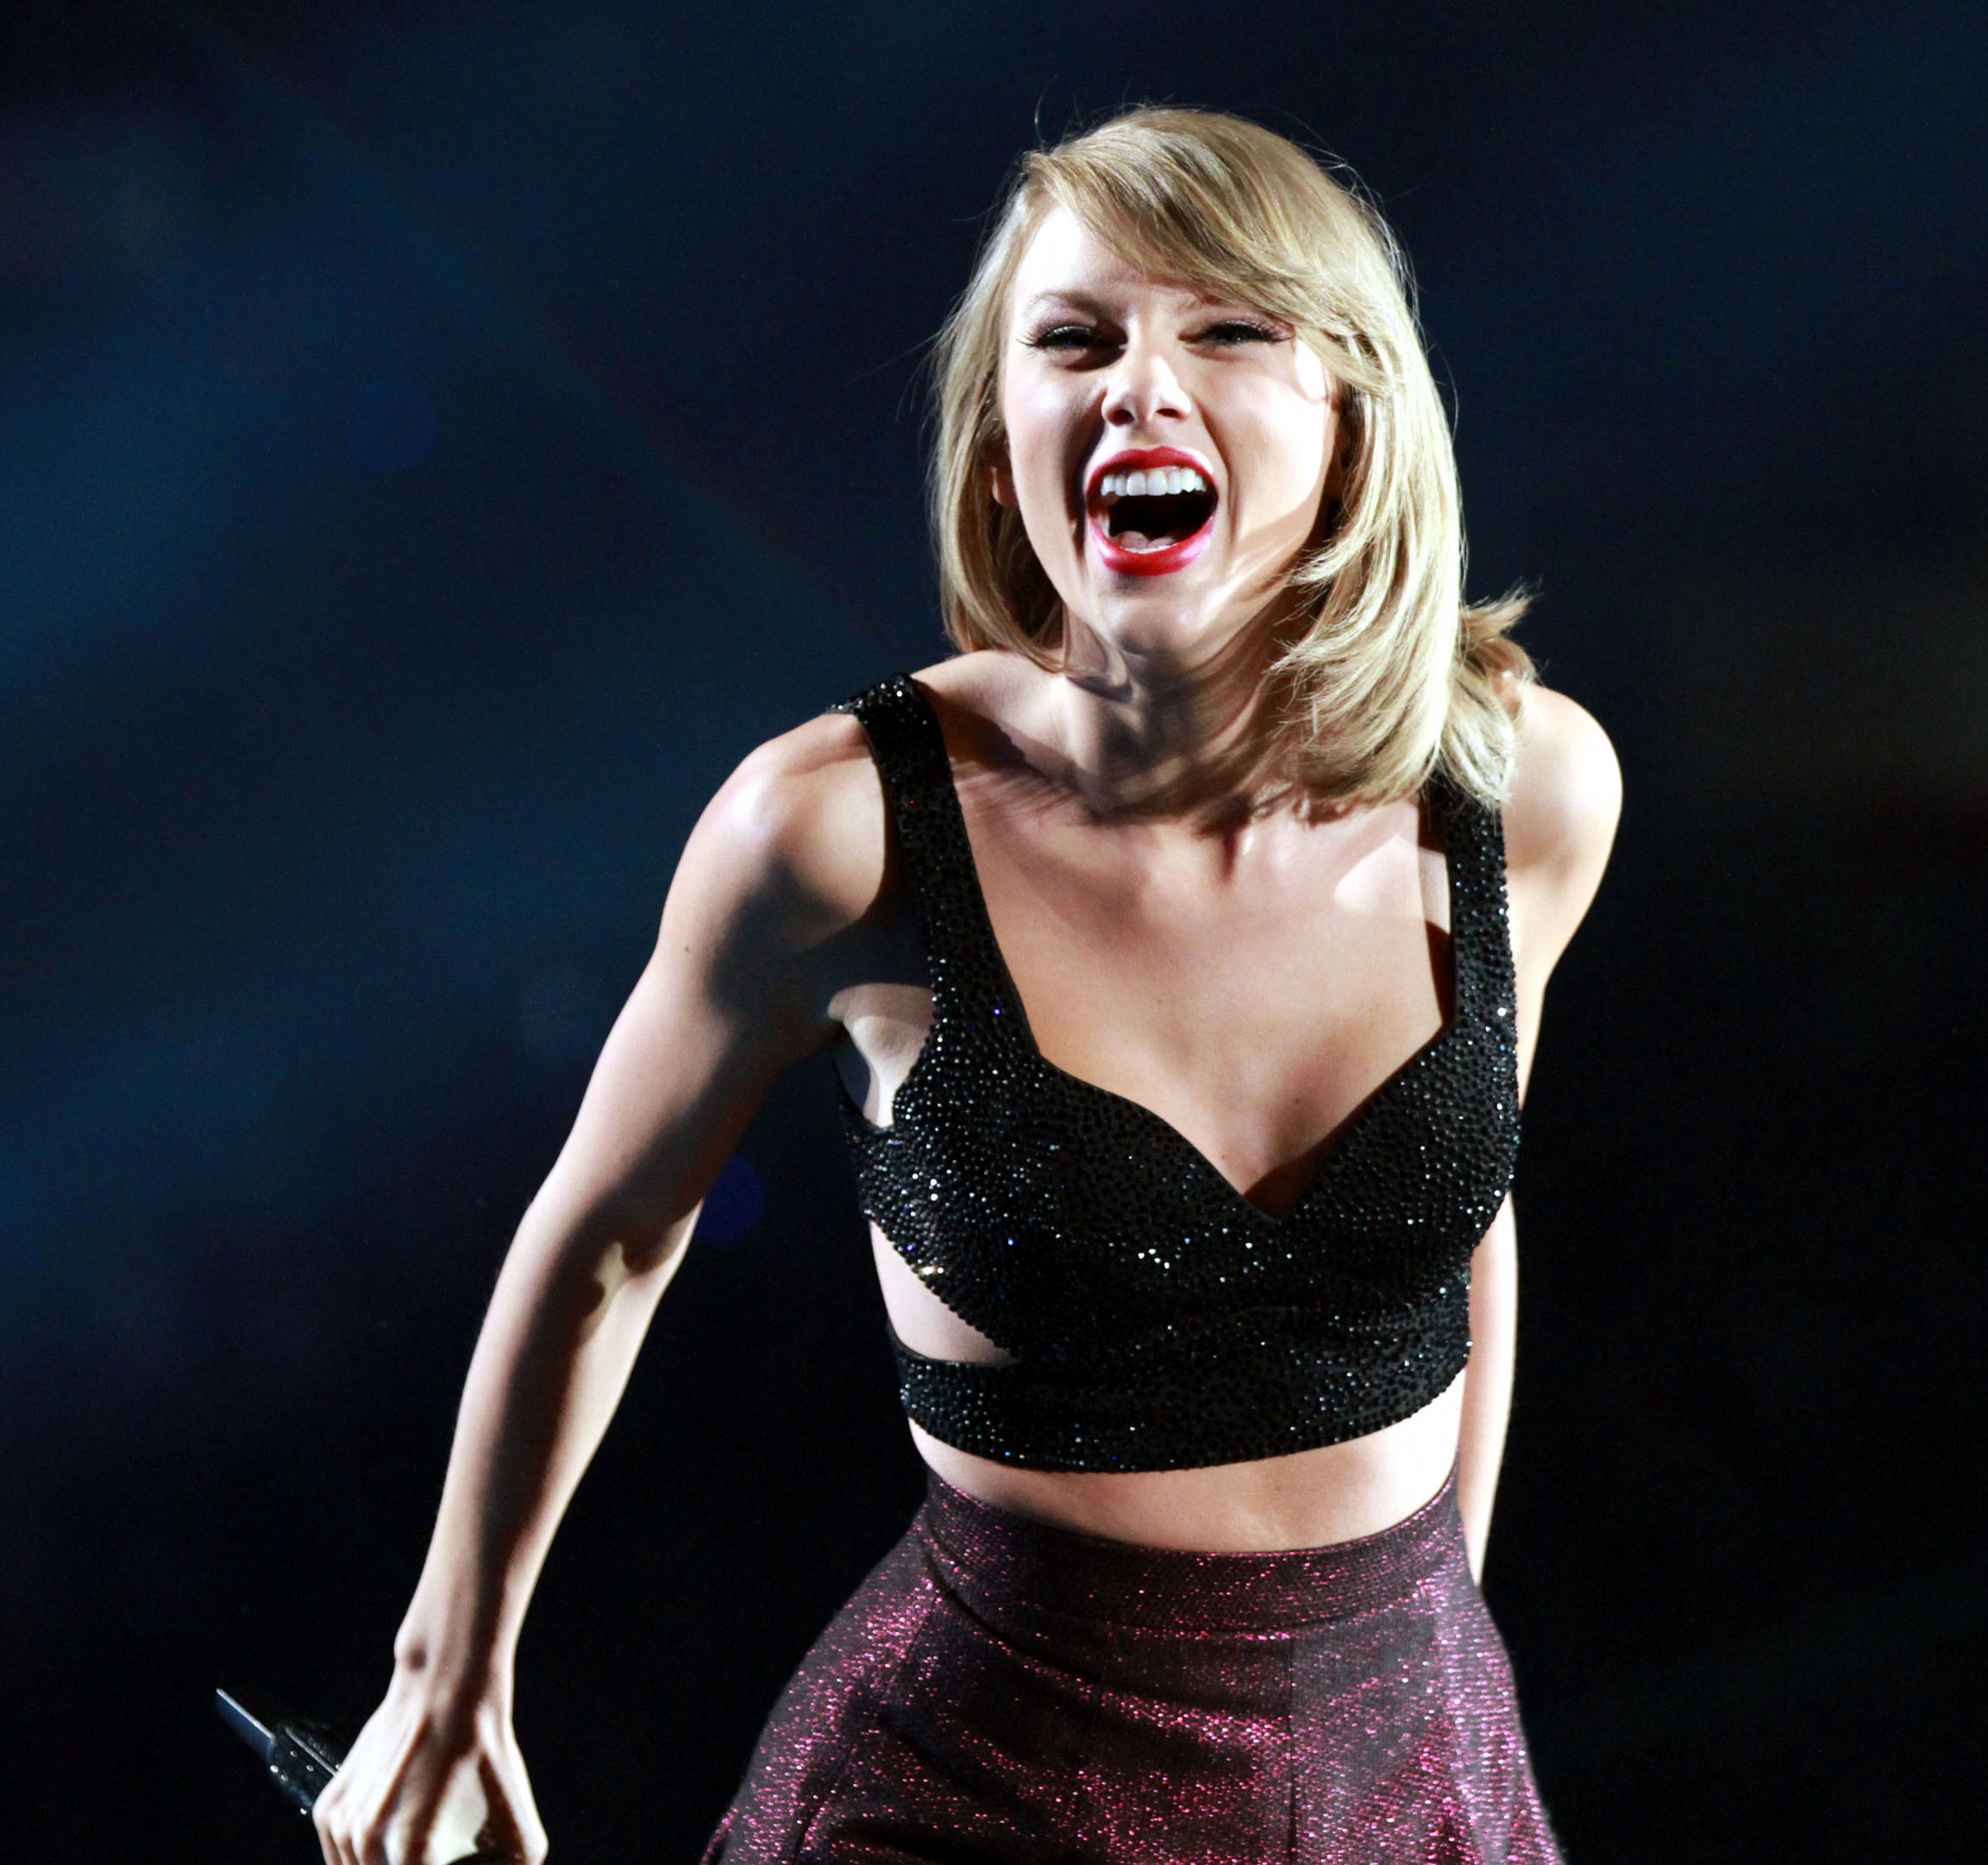 Concert Review And Photos Taylor Swift Showcases Pop Power At Georgia Dome